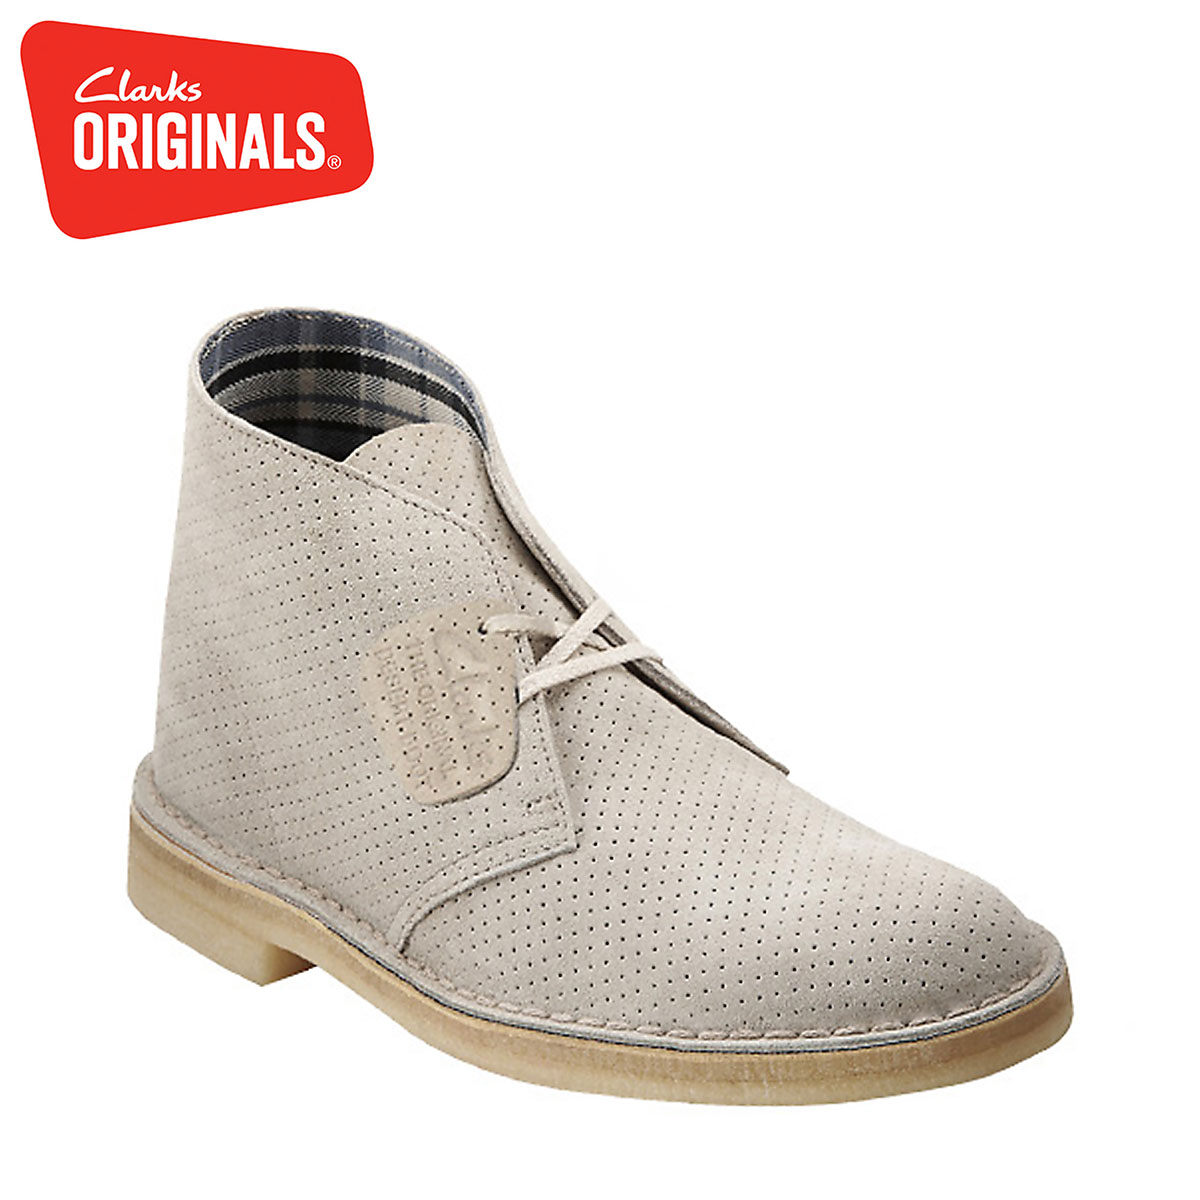 6d1e17550c7c Desert boots and the Wallabies now known is synonymous with casual shoes.  Always has been pursuing usability and comfort Clarks companies founded is  the ...